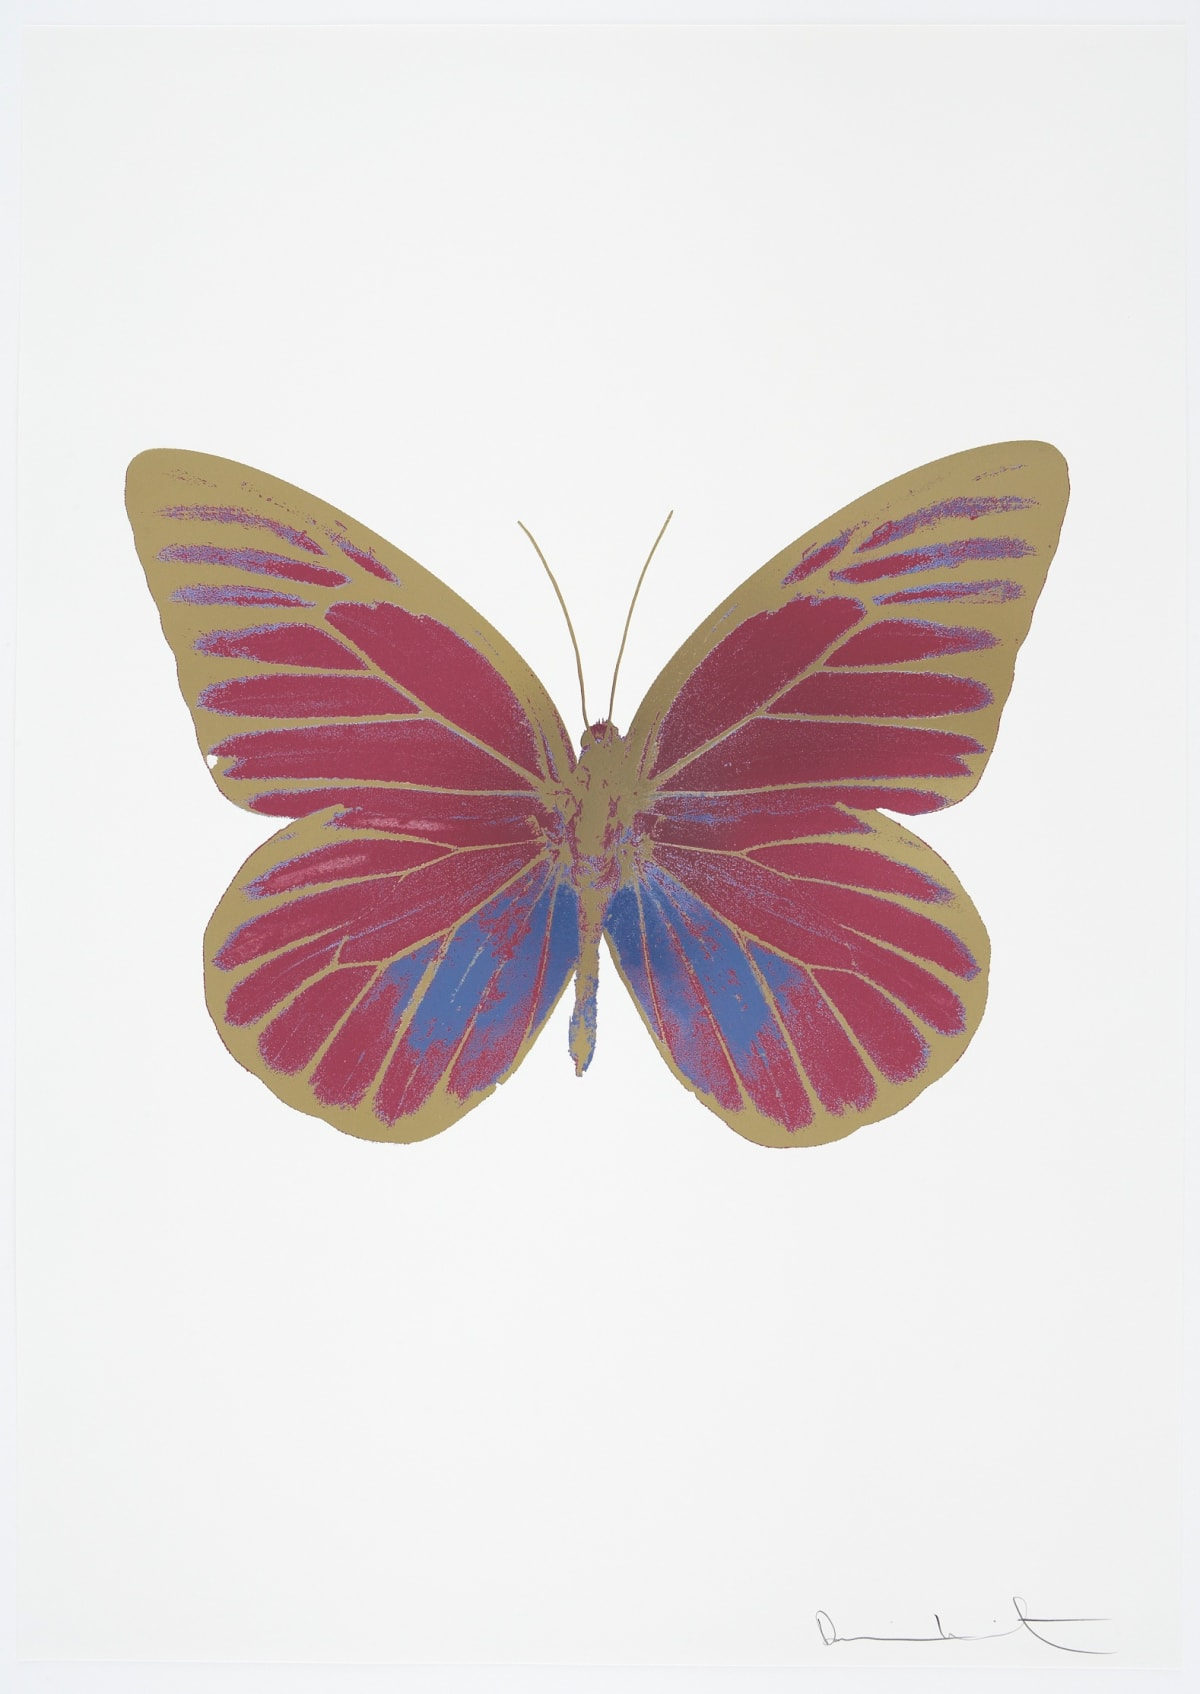 Damien Hirst The Souls I - Loganberry Pink/Cornflower Blue/Cool Gold, 2010 3 colour foil block on 300gsm Arches 88 archival paper. Signed and numbered. Published by Paul Stolper and Other Criteria 72 x 51cm OC7769 / 659-32 Edition of 15